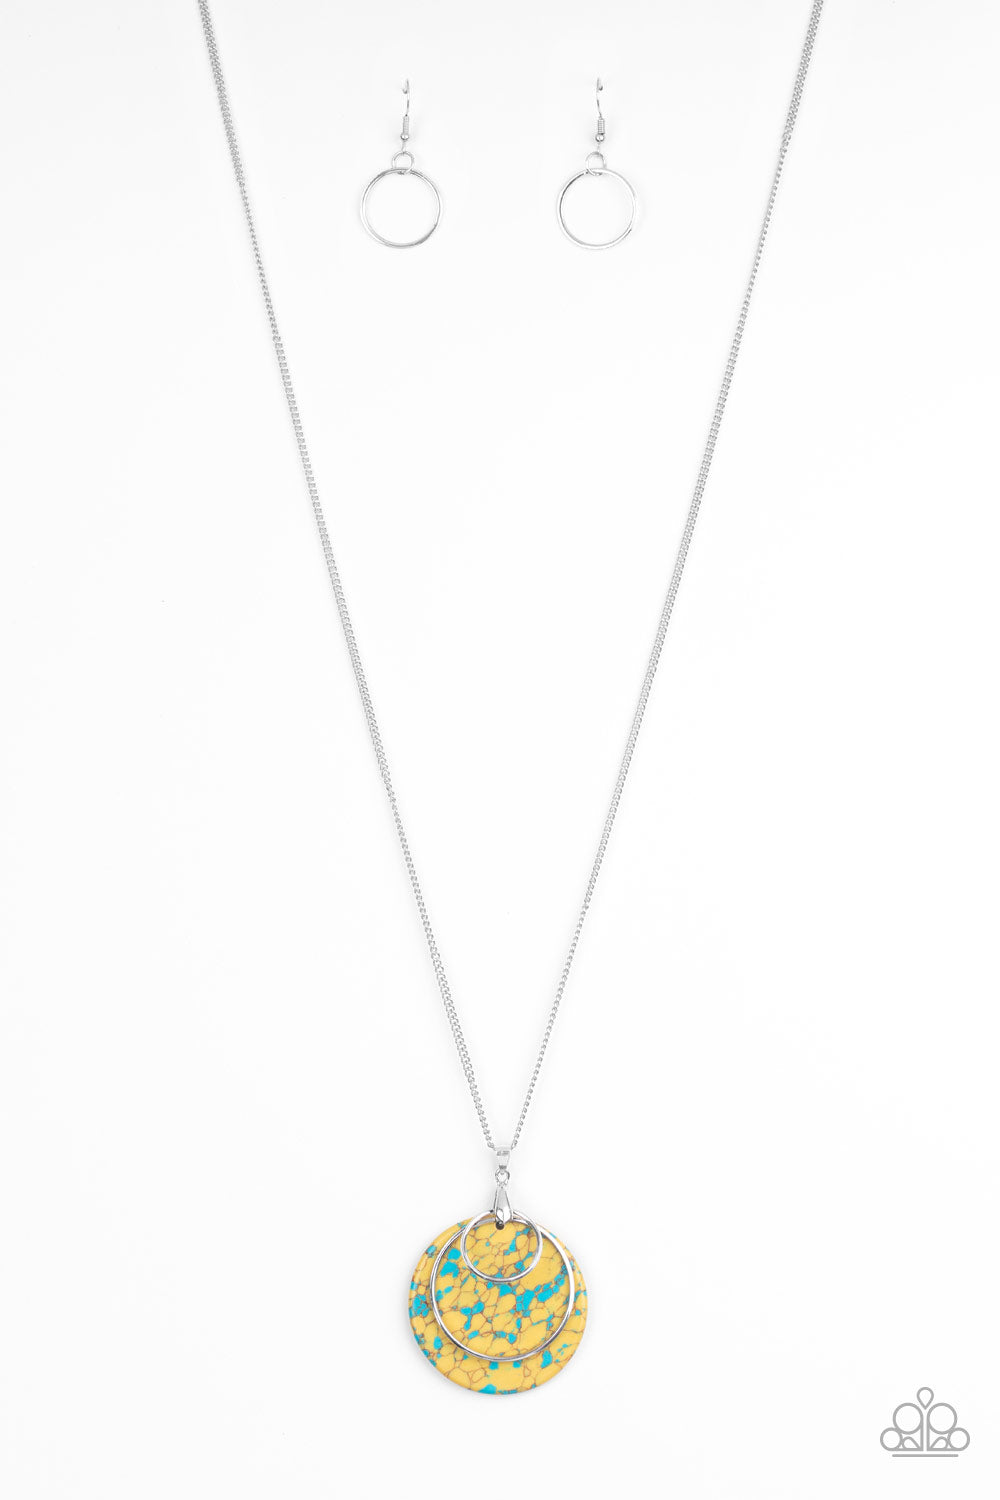 Sahara Equinox - Yellow Necklace